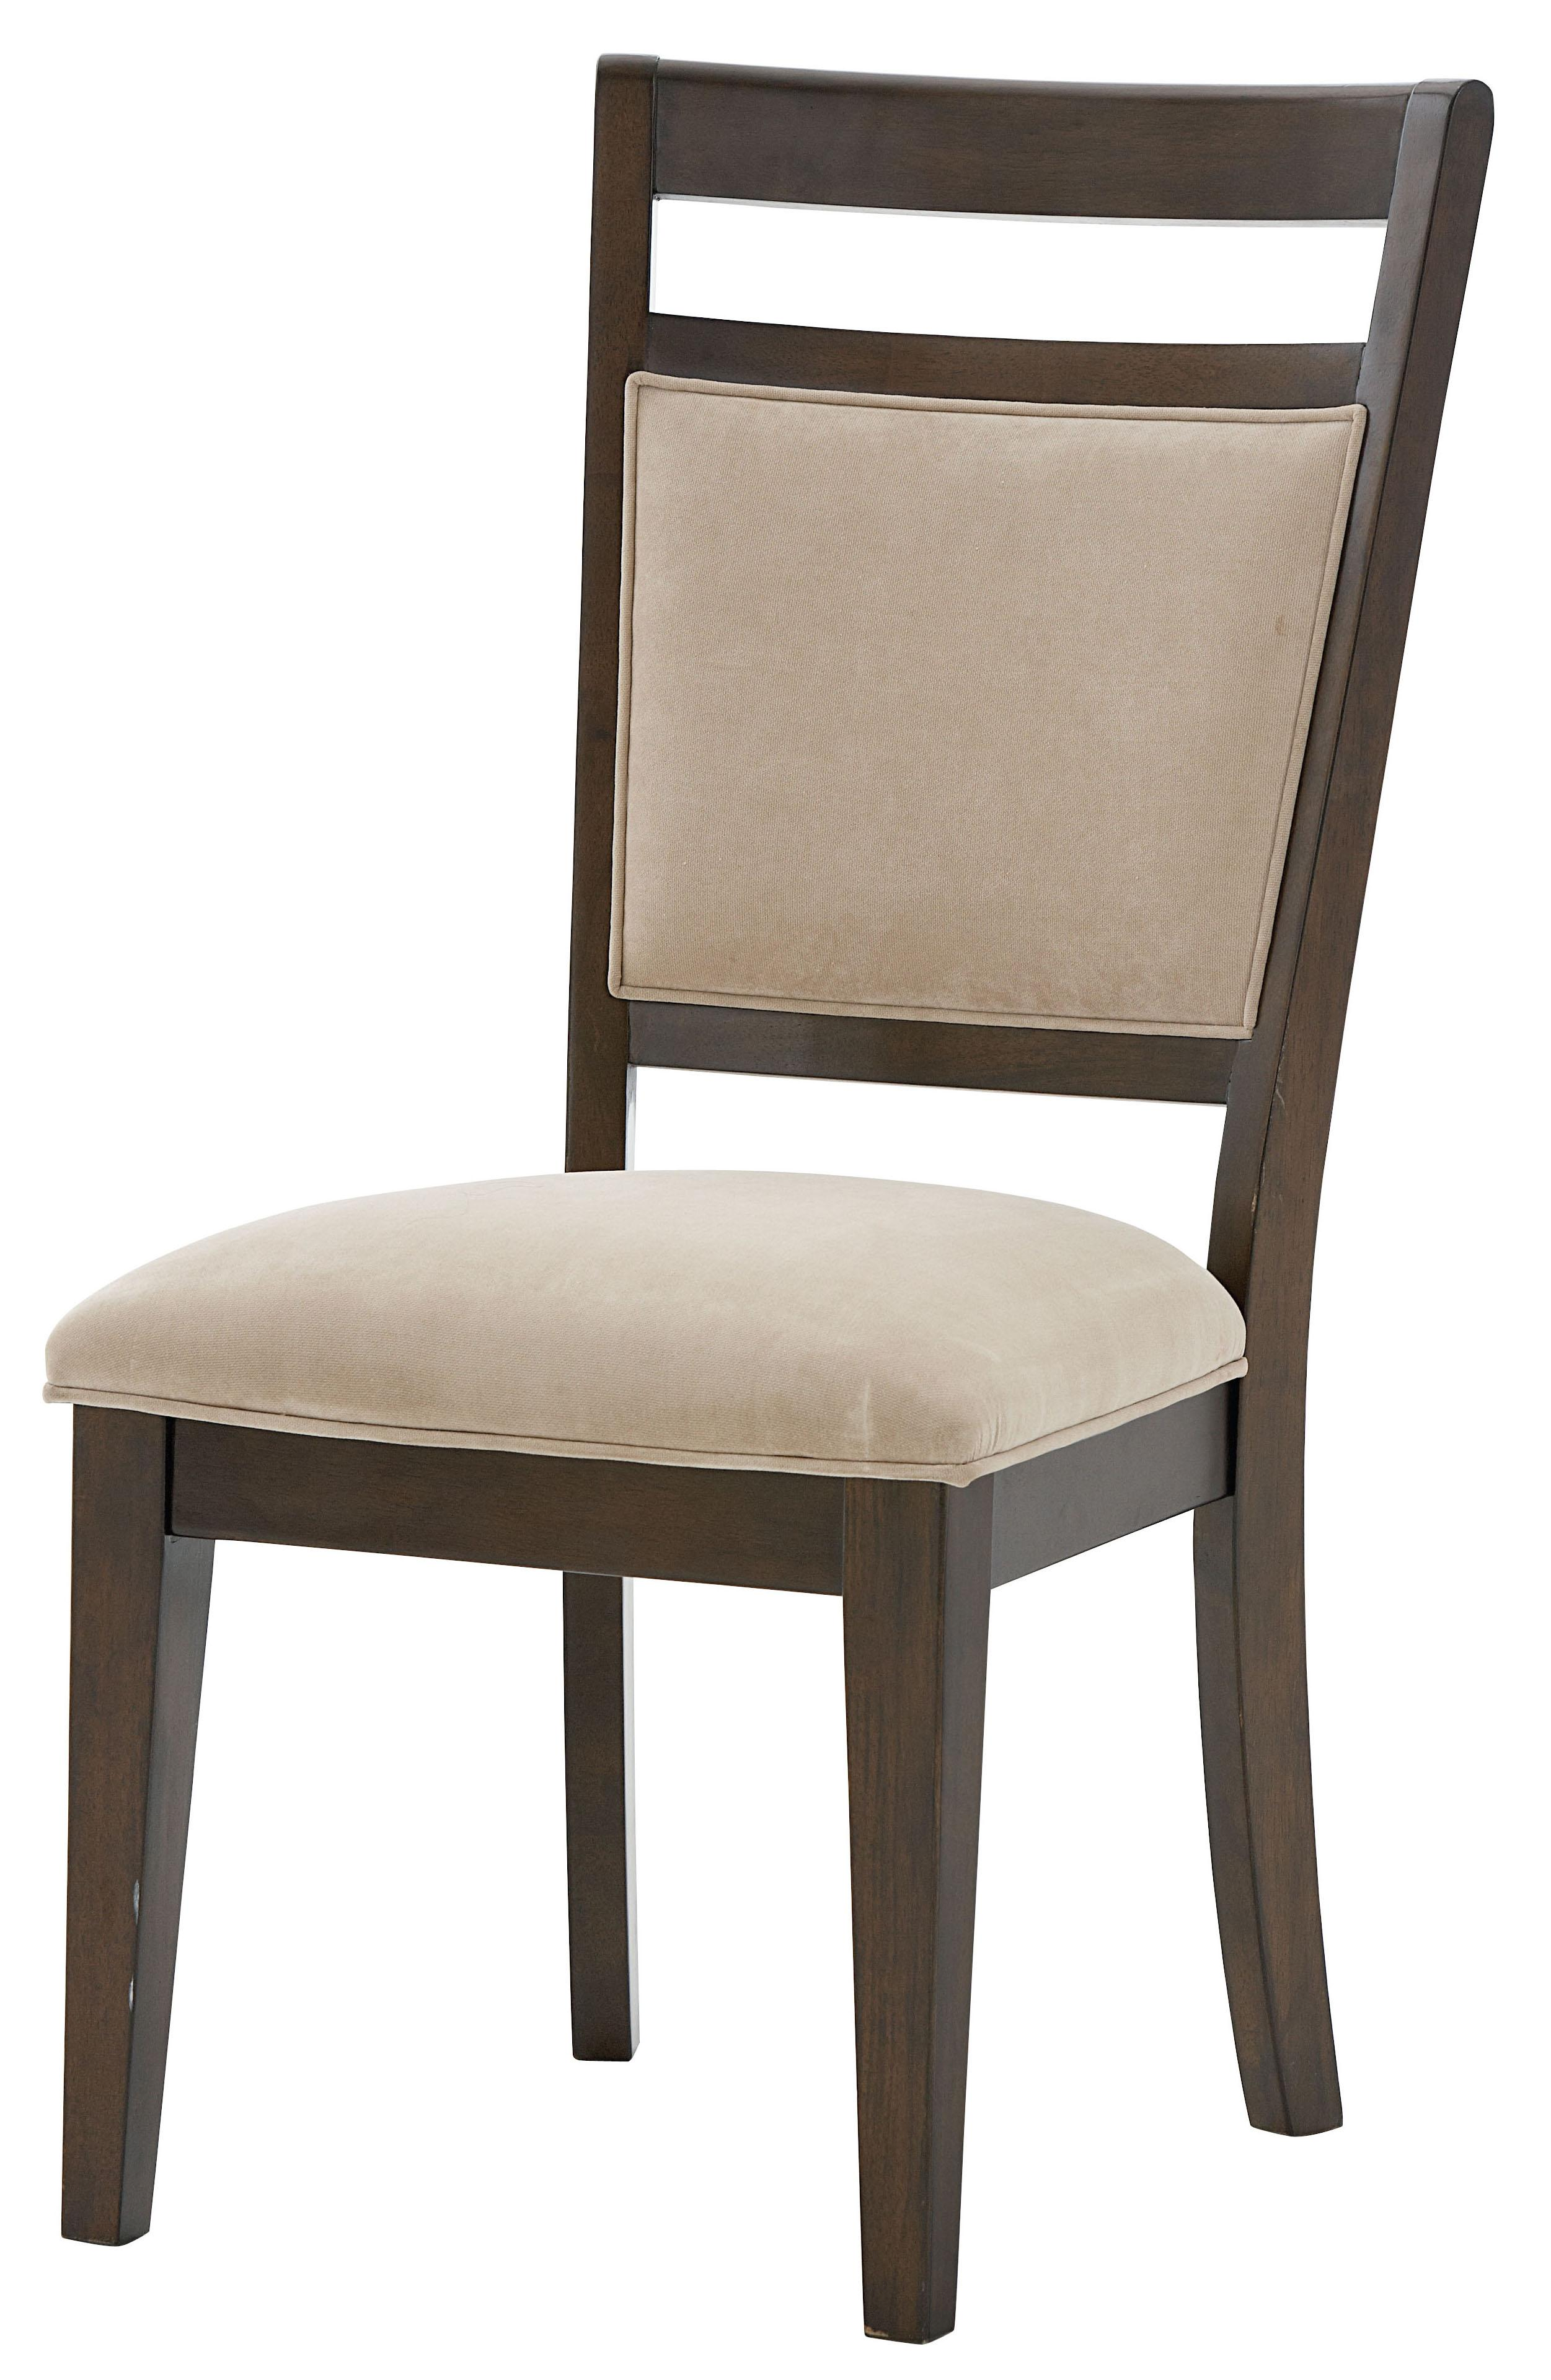 Standard Furniture Avion Side Chair with Upholstered Seat